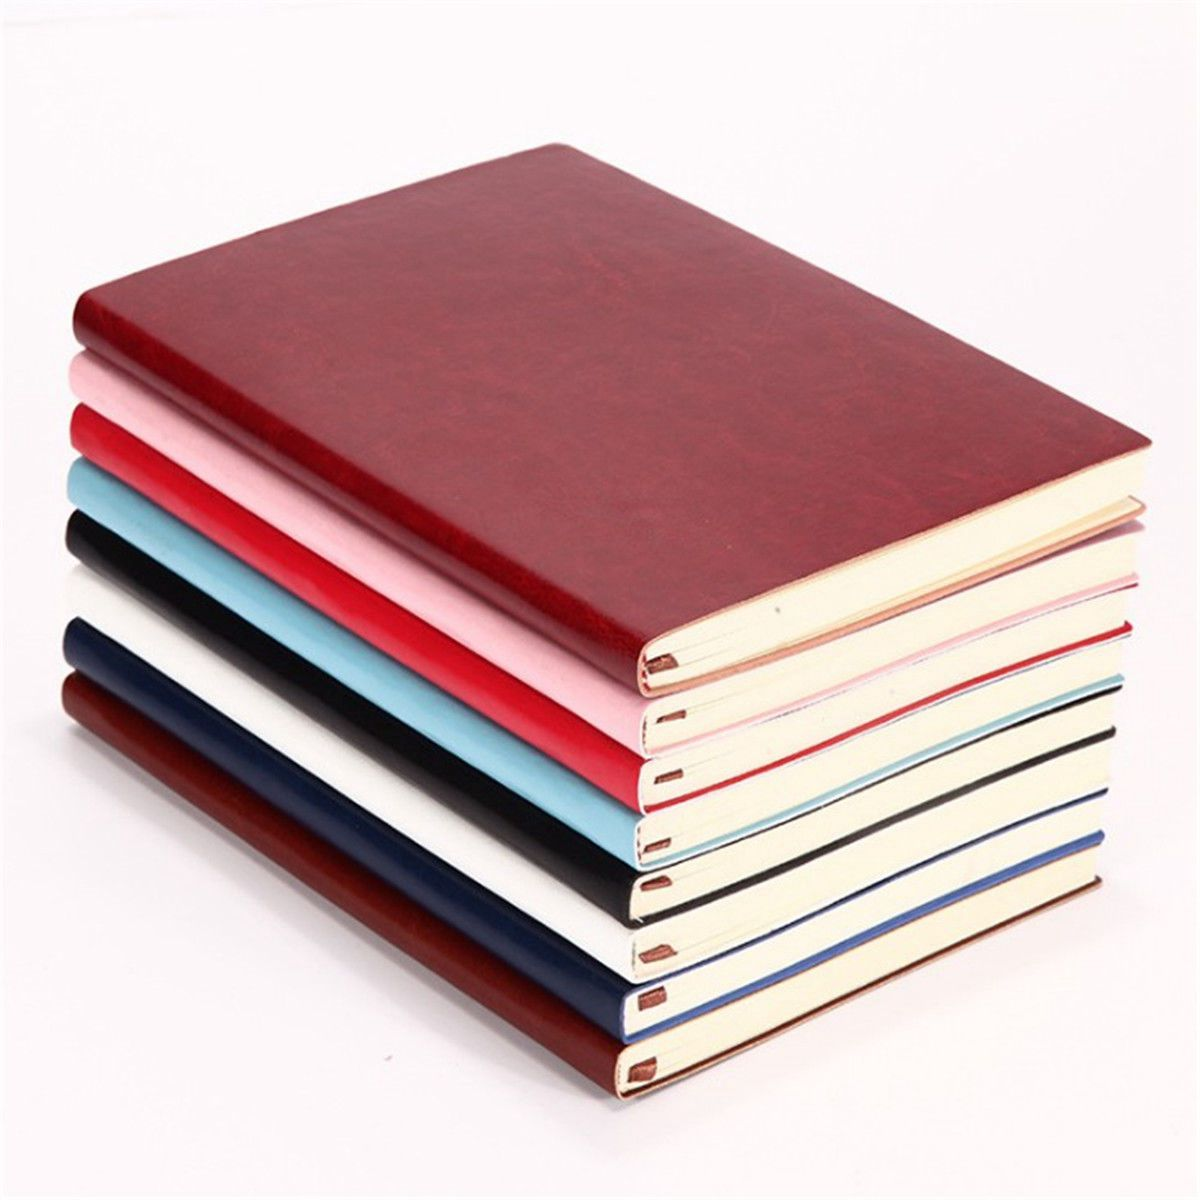 6 Color Random Soft Cover PU Leather Notebook Writing Journal 100 Page Lined Diary Book orient qbch00dw page 6